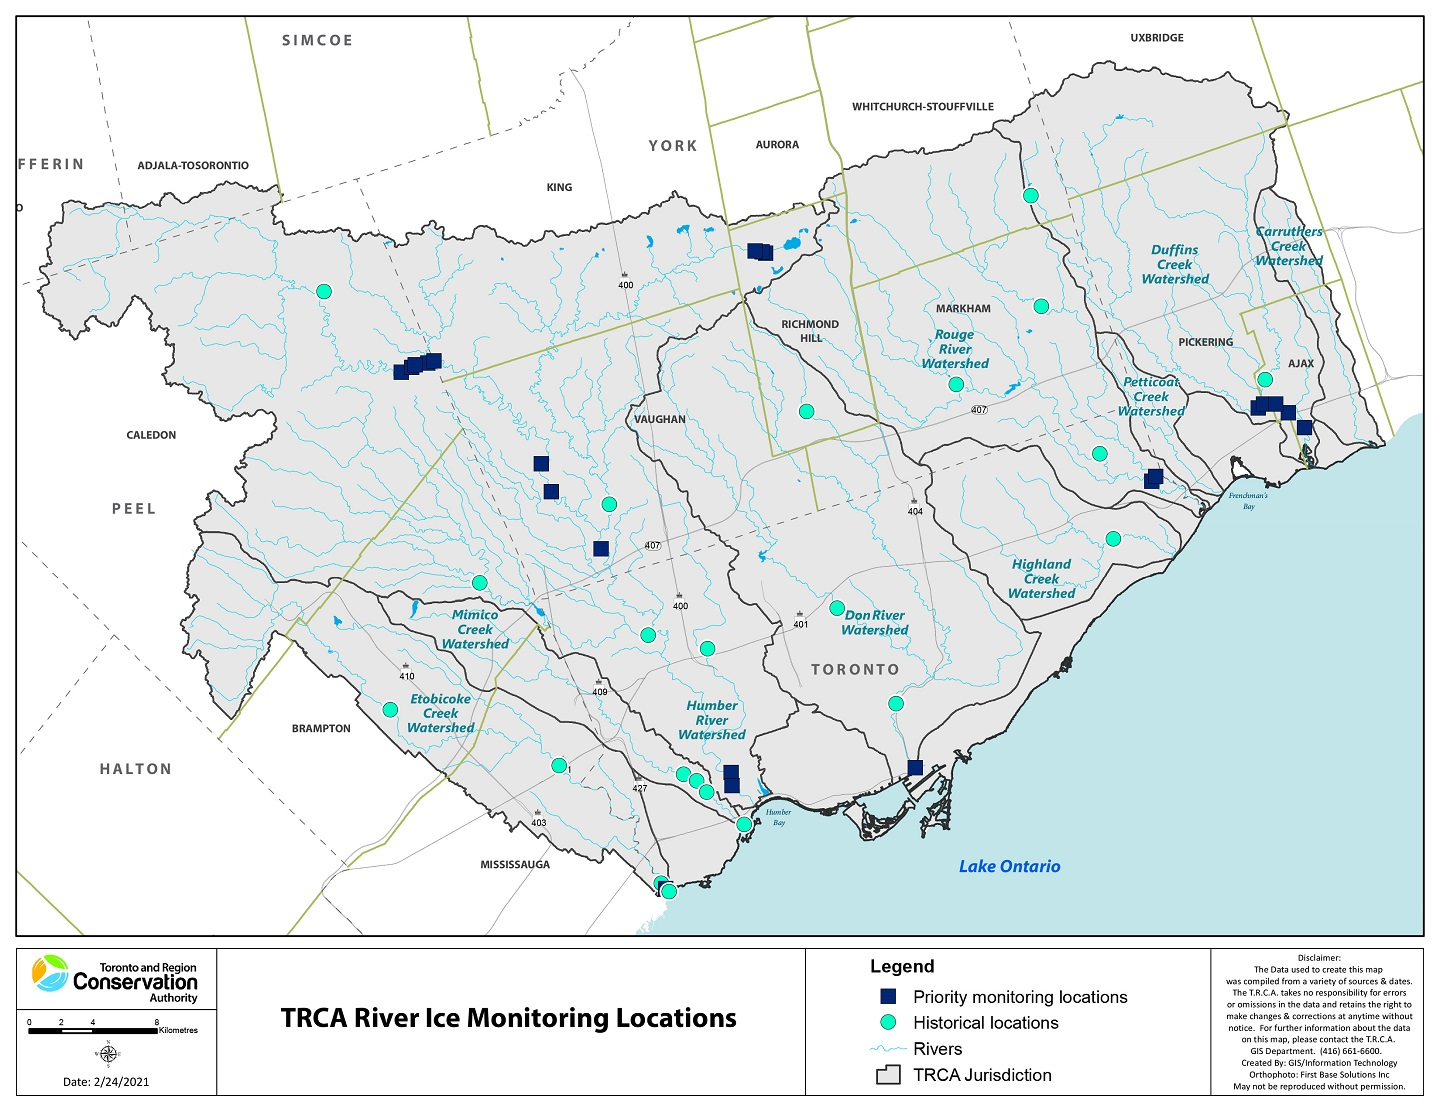 map of TRCA river ice monitoring locations